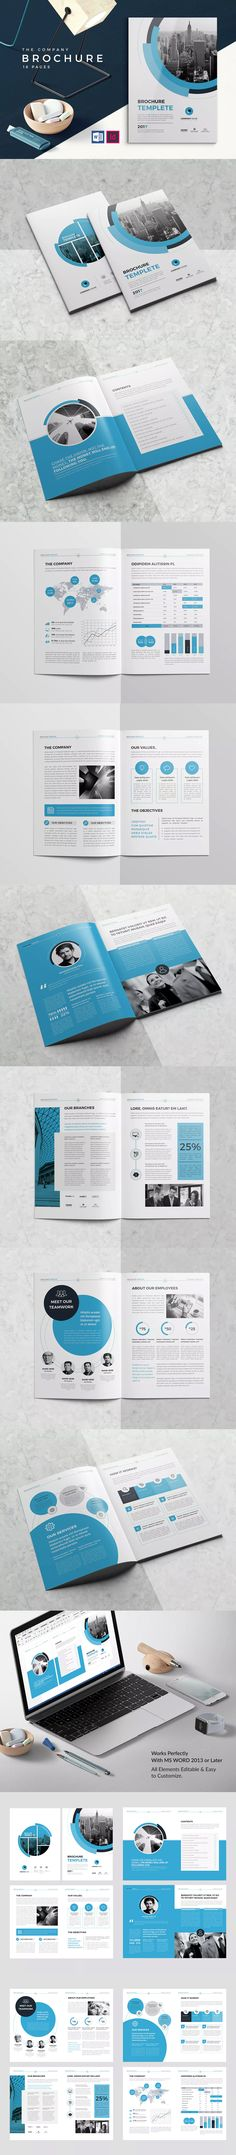 CO Brochure Template InDesign INDD A4